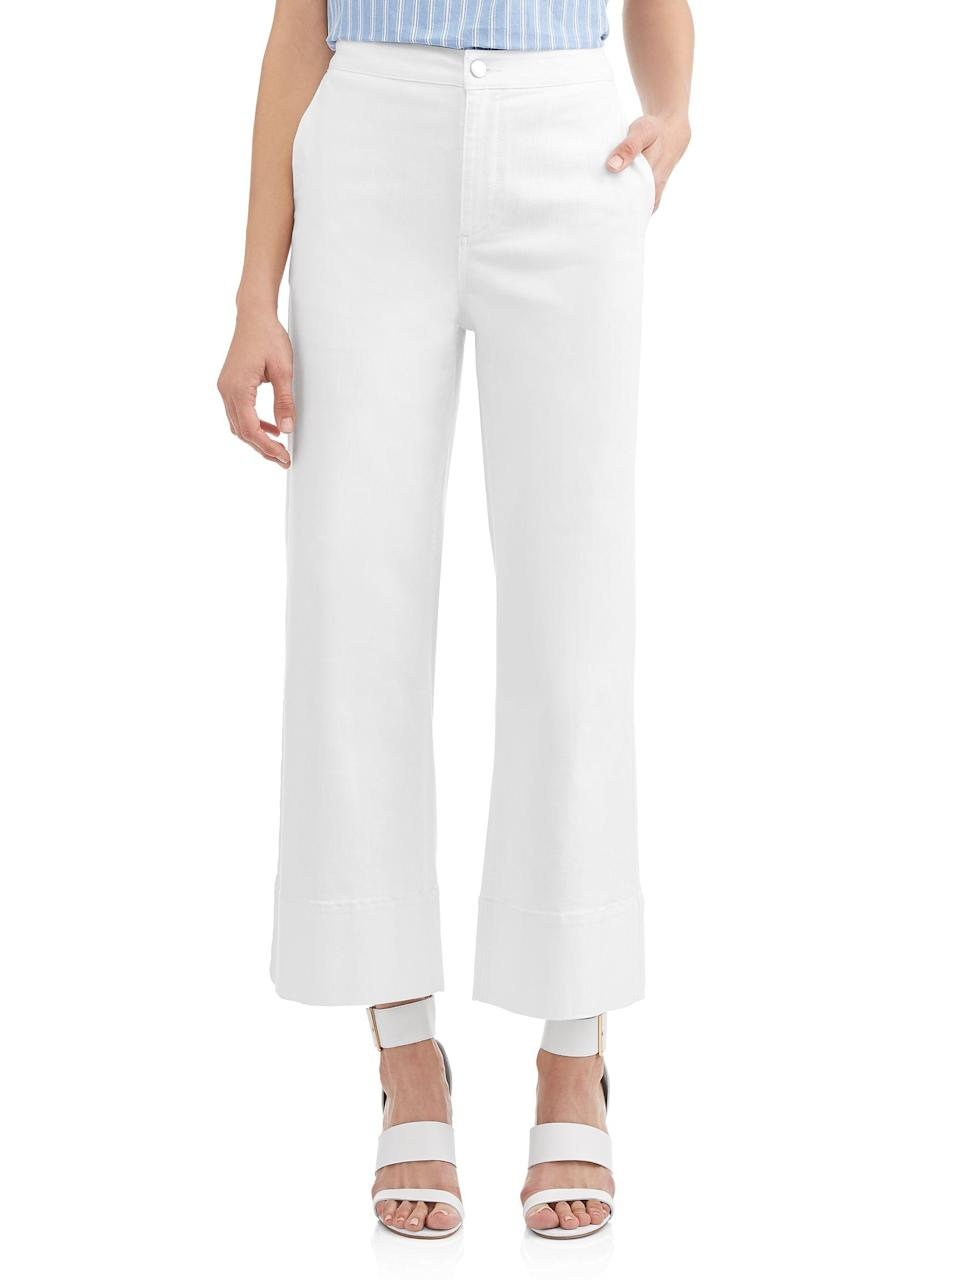 "<h3>Flare Crop White Jeans</h3><p>Want to dip your toes in the sailor pant trend for the low, low price of $38? These cropped, ever-so-slightly flared trousers will take you through the summer without breaking the bank even a little.</p><br><br><strong>Textile</strong> Women's Parker Flare Crop Jean, $38, available at <a href=""https://www.walmart.com/ip/Women-s-Parker-Flare-Crop-Jean/593728991"" rel=""nofollow noopener"" target=""_blank"" data-ylk=""slk:Walmart"" class=""link rapid-noclick-resp"">Walmart</a>"